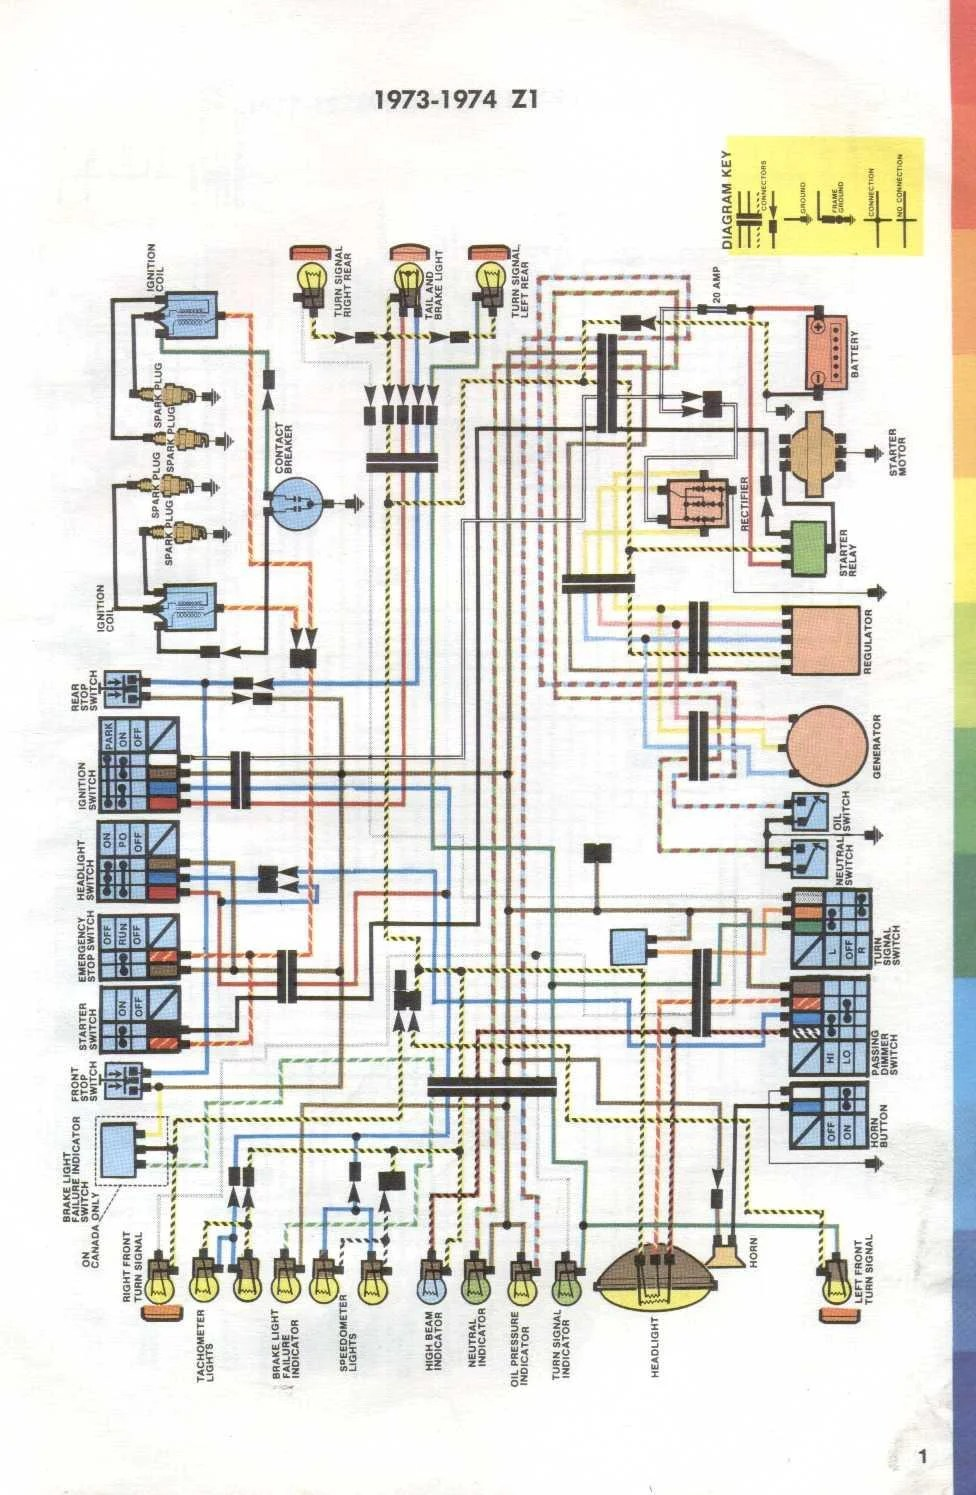 hight resolution of the z zonekawasaki z1 z1a 900 1973 1974 wiring diagram